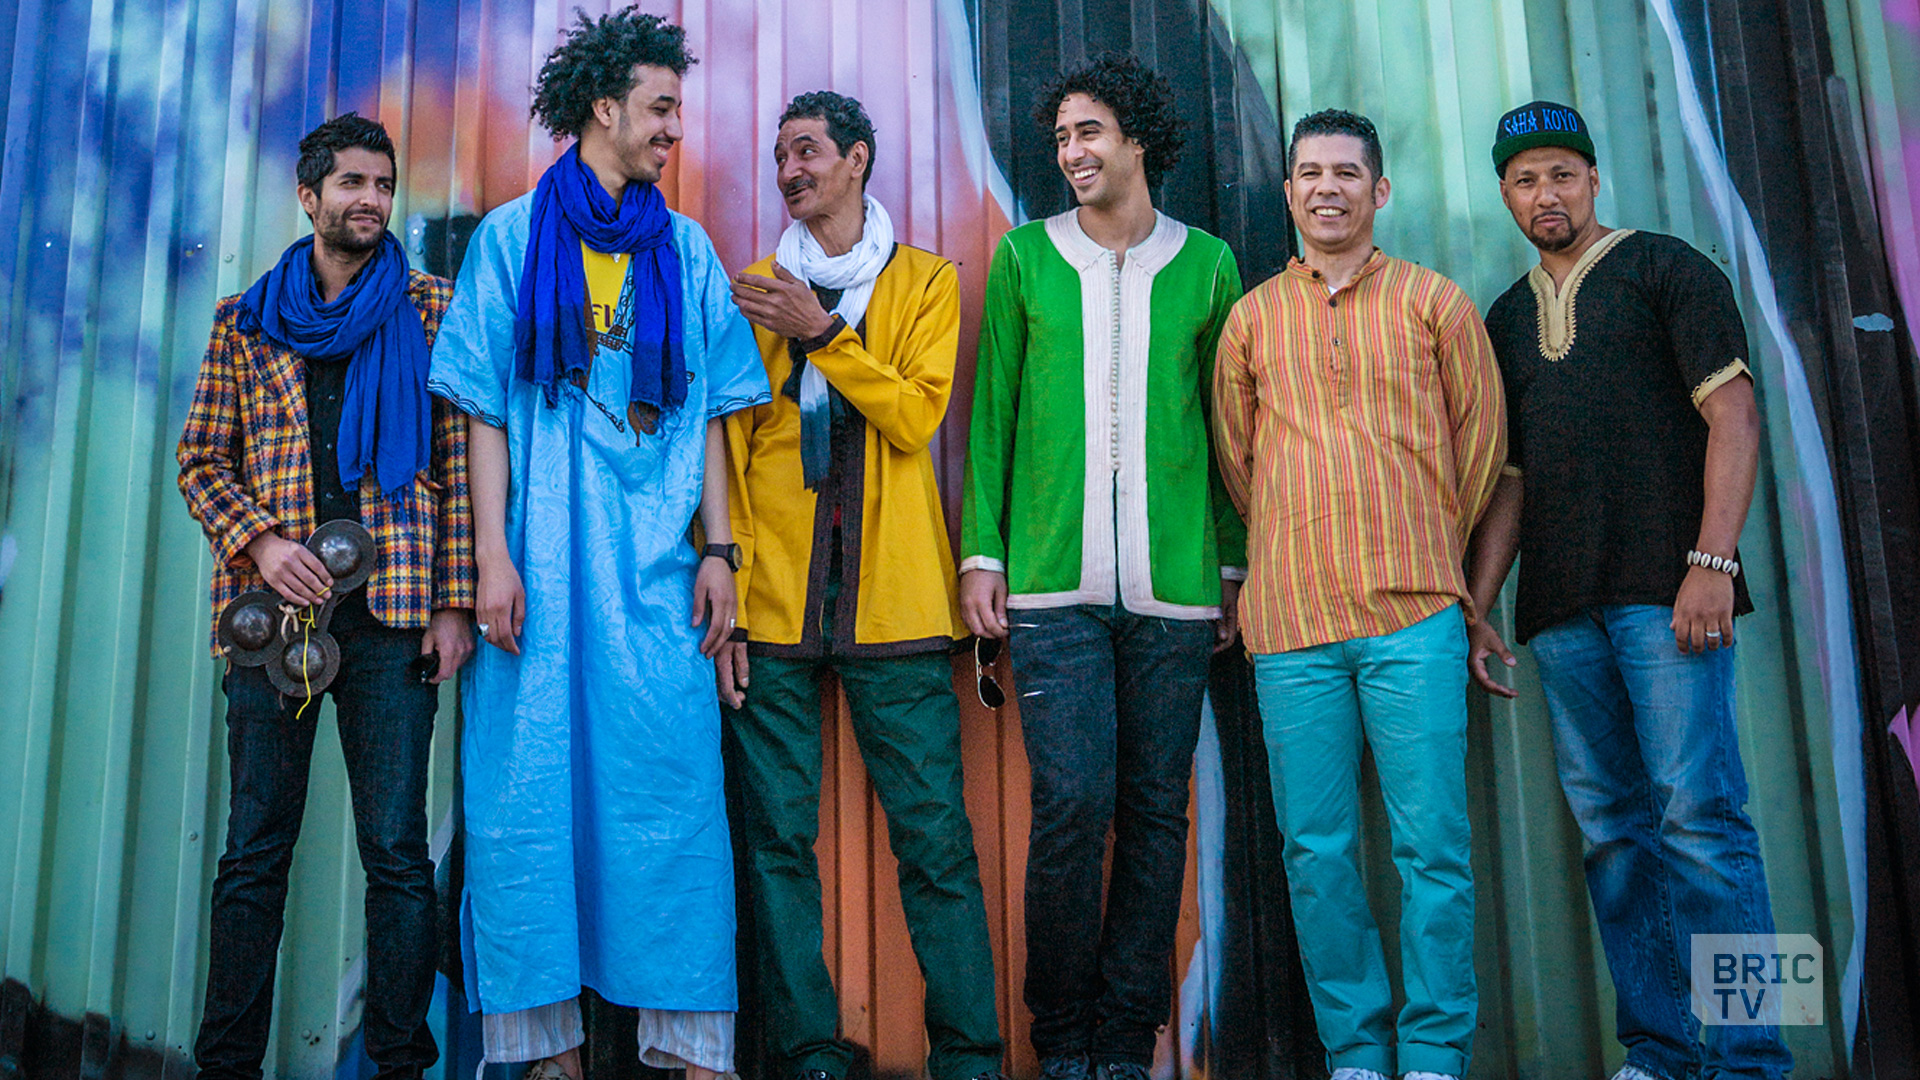 Innov Gnawa - A young musical collective dedicated to exploring Morocco's venerable gnawa music tradition in the heart of NYC...